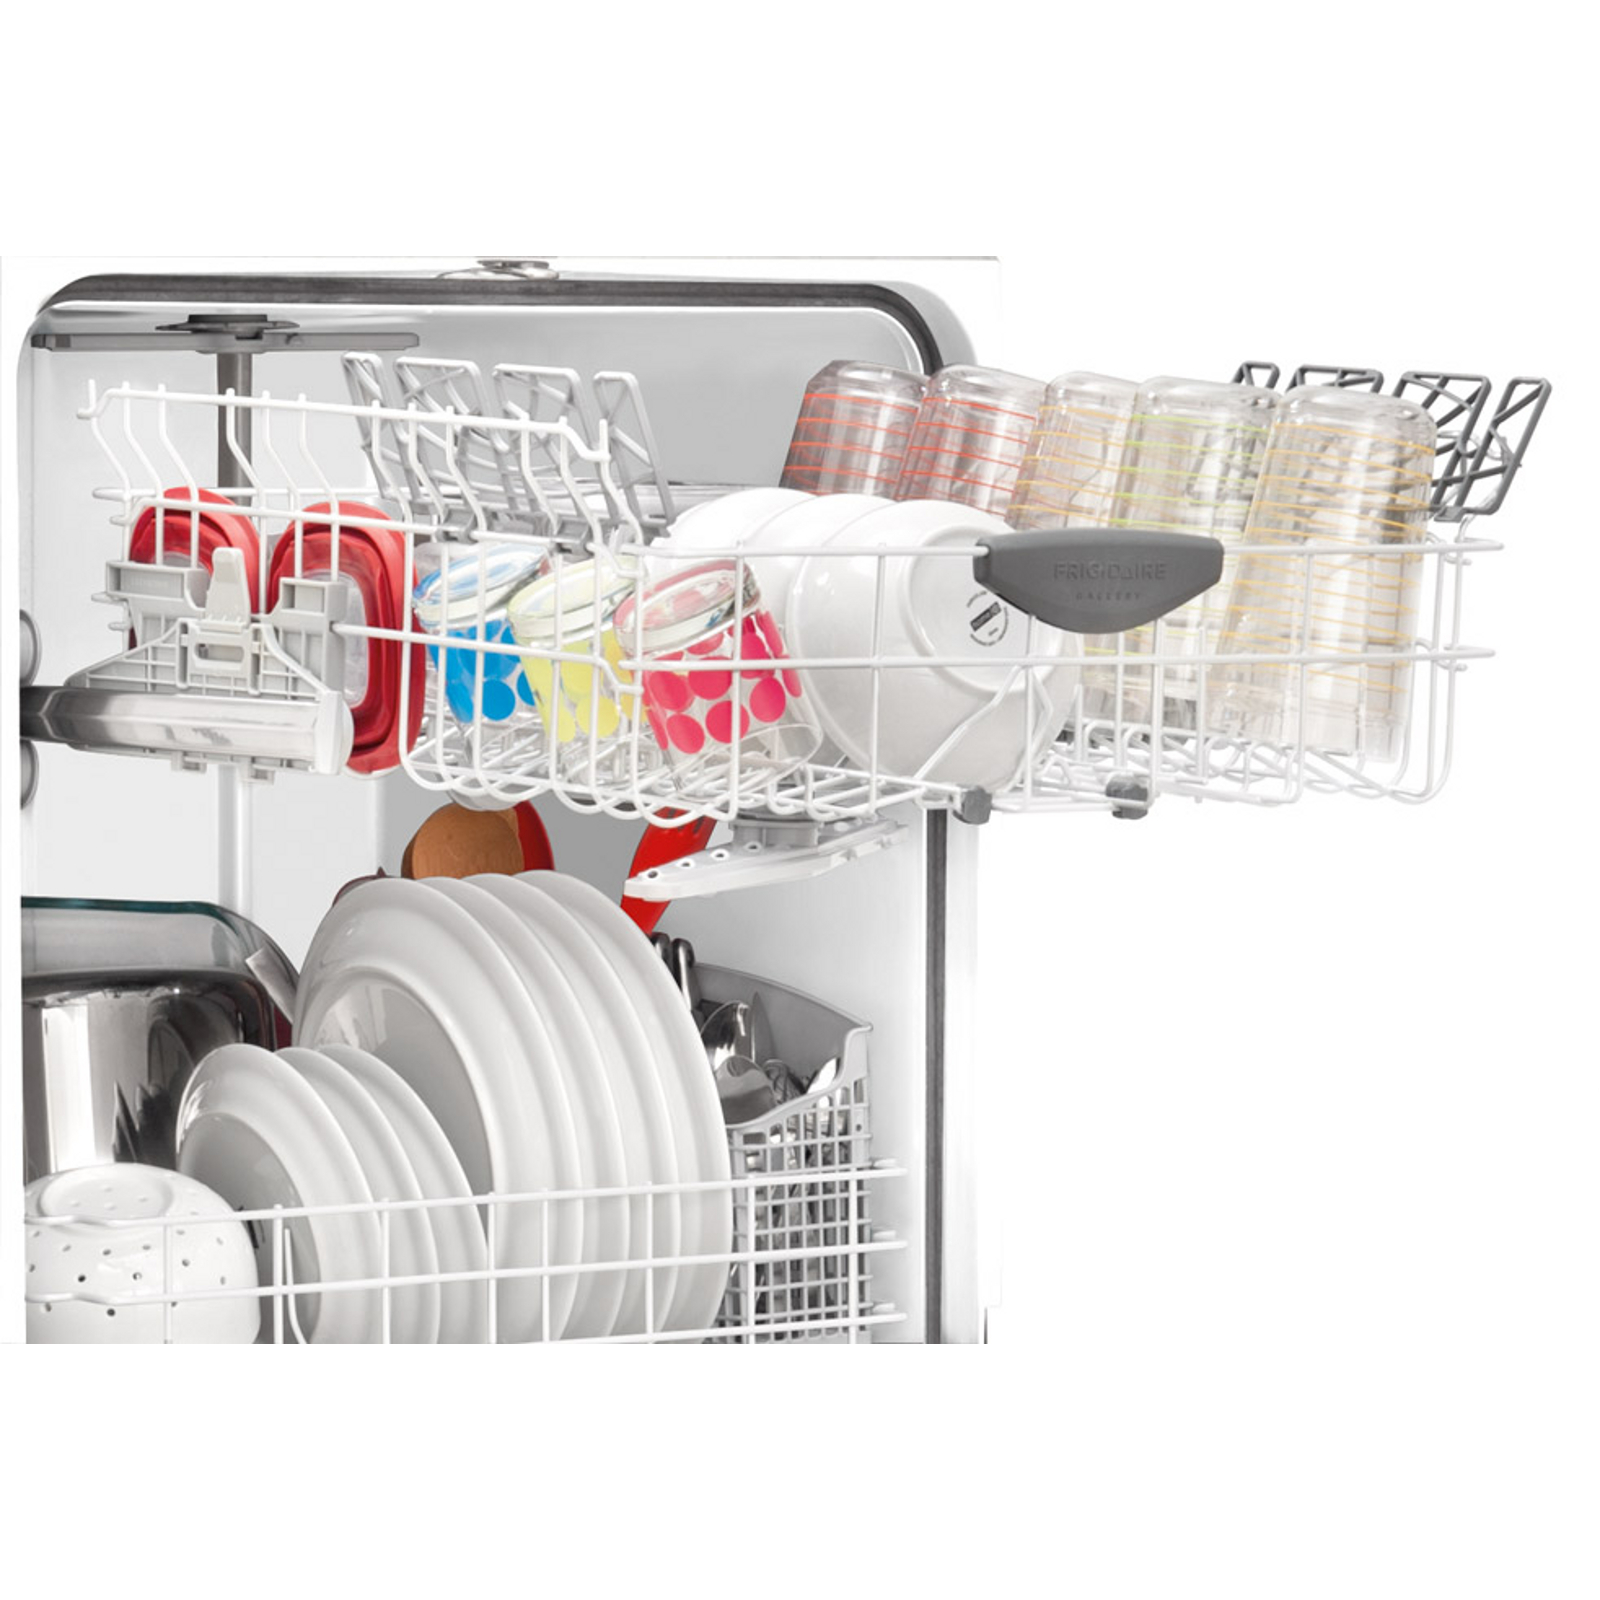 "Frigidaire Gallery FGBD2434PW Gallery 24"" Built-In Dishwasher w/ Nylon Racks - White"